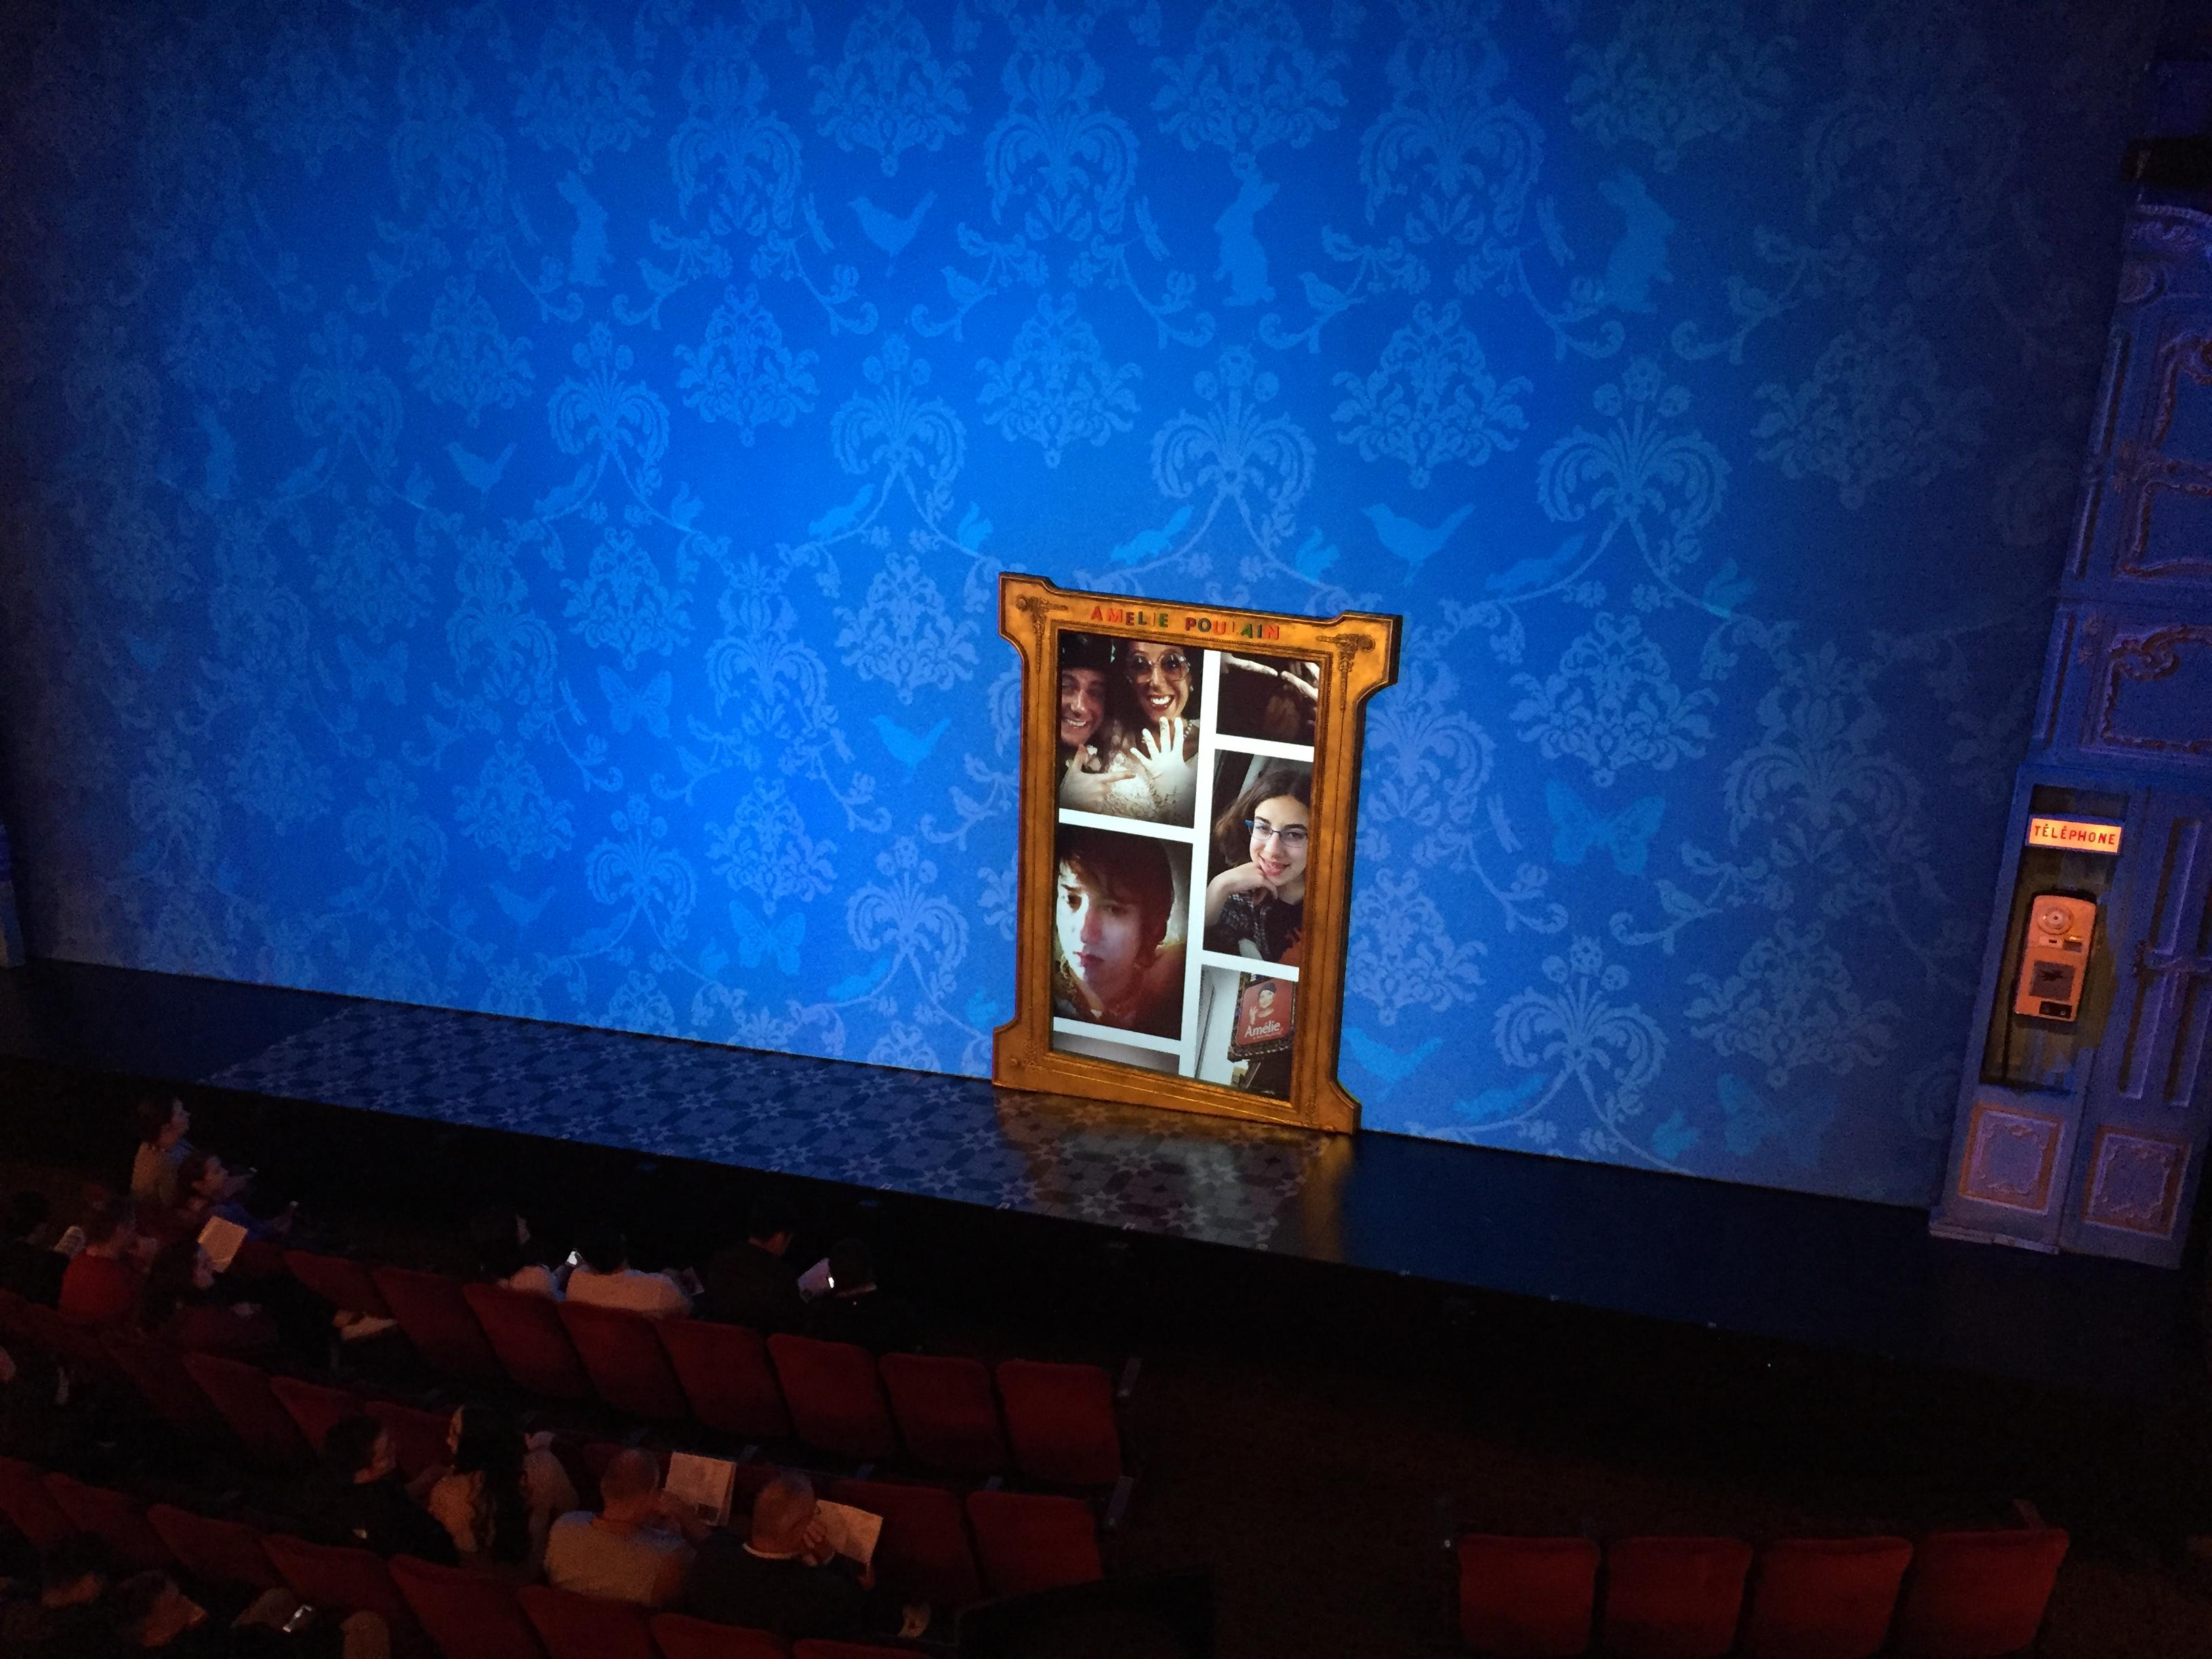 Walter Kerr Theatre Section Mezzanine R Row A Seat 6